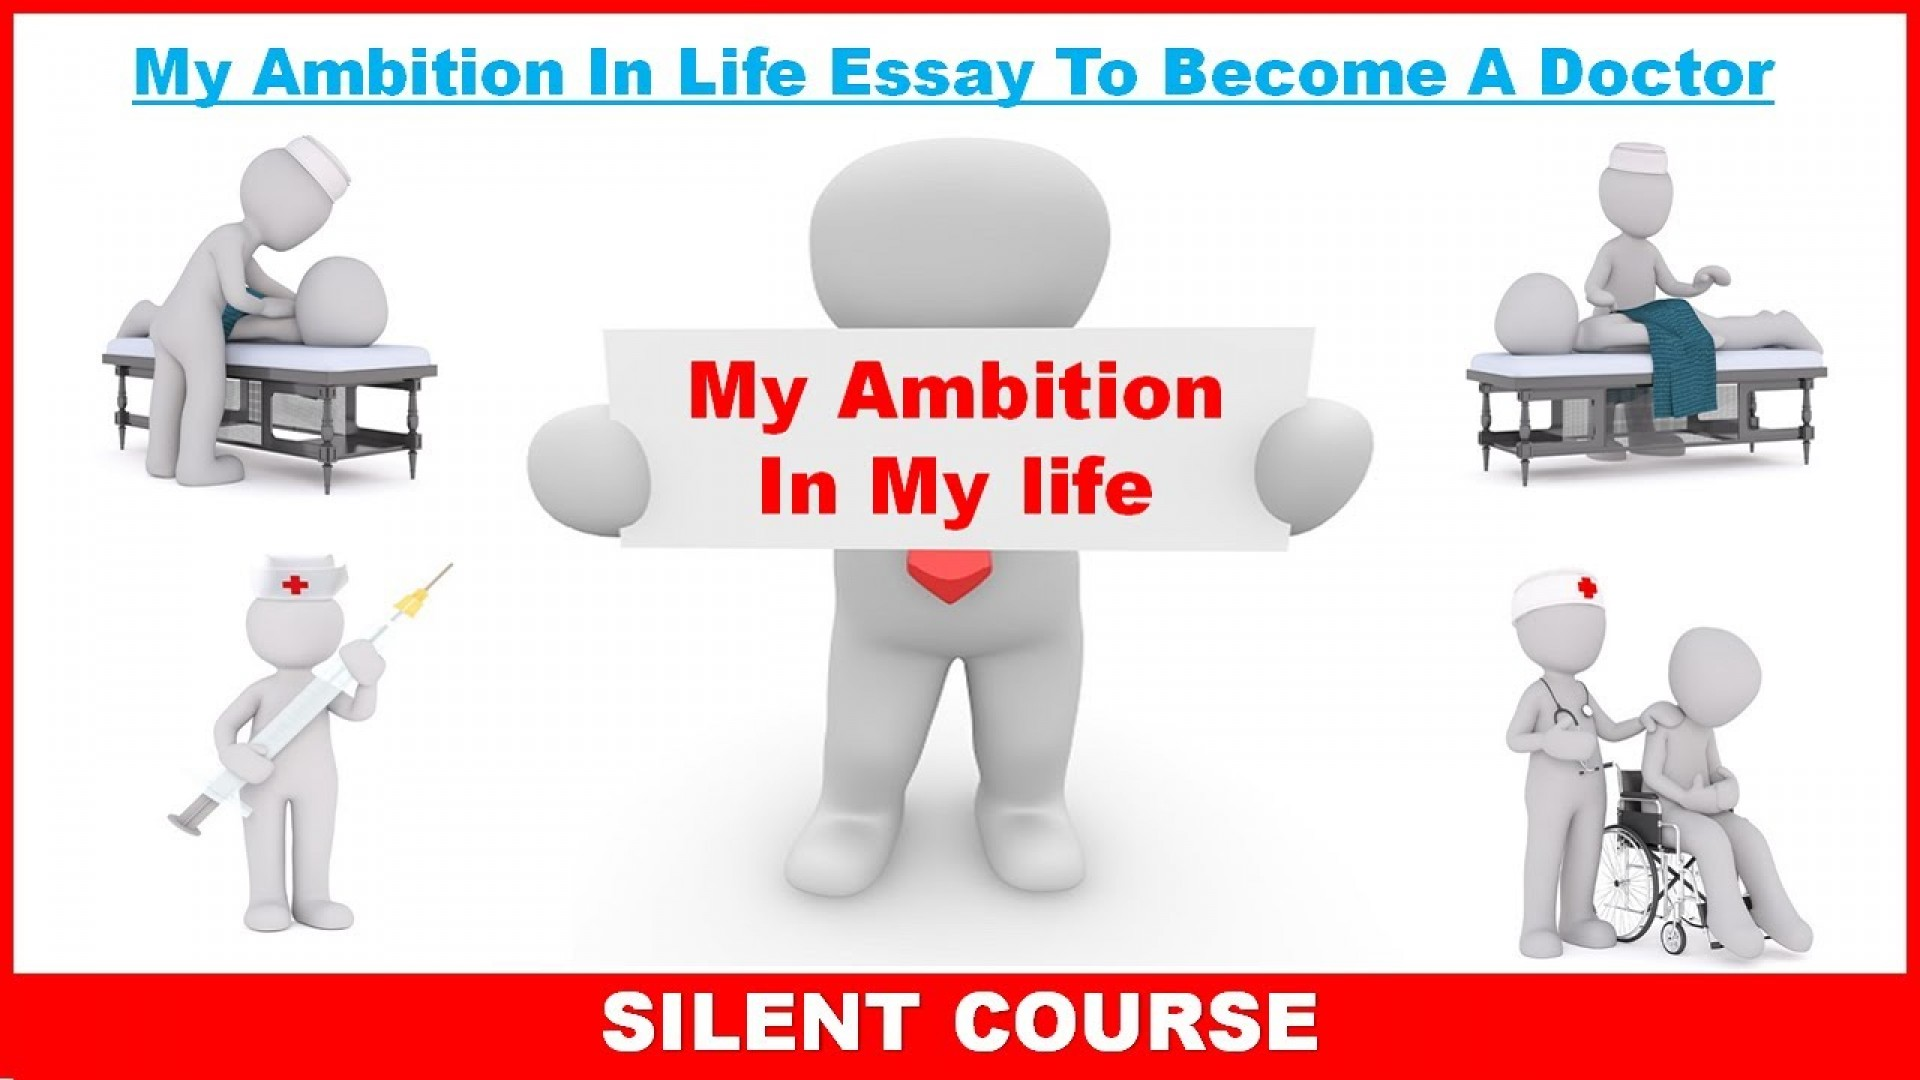 011 Essay My Ambition Doctor Example Stupendous In Hindi Simple 1920